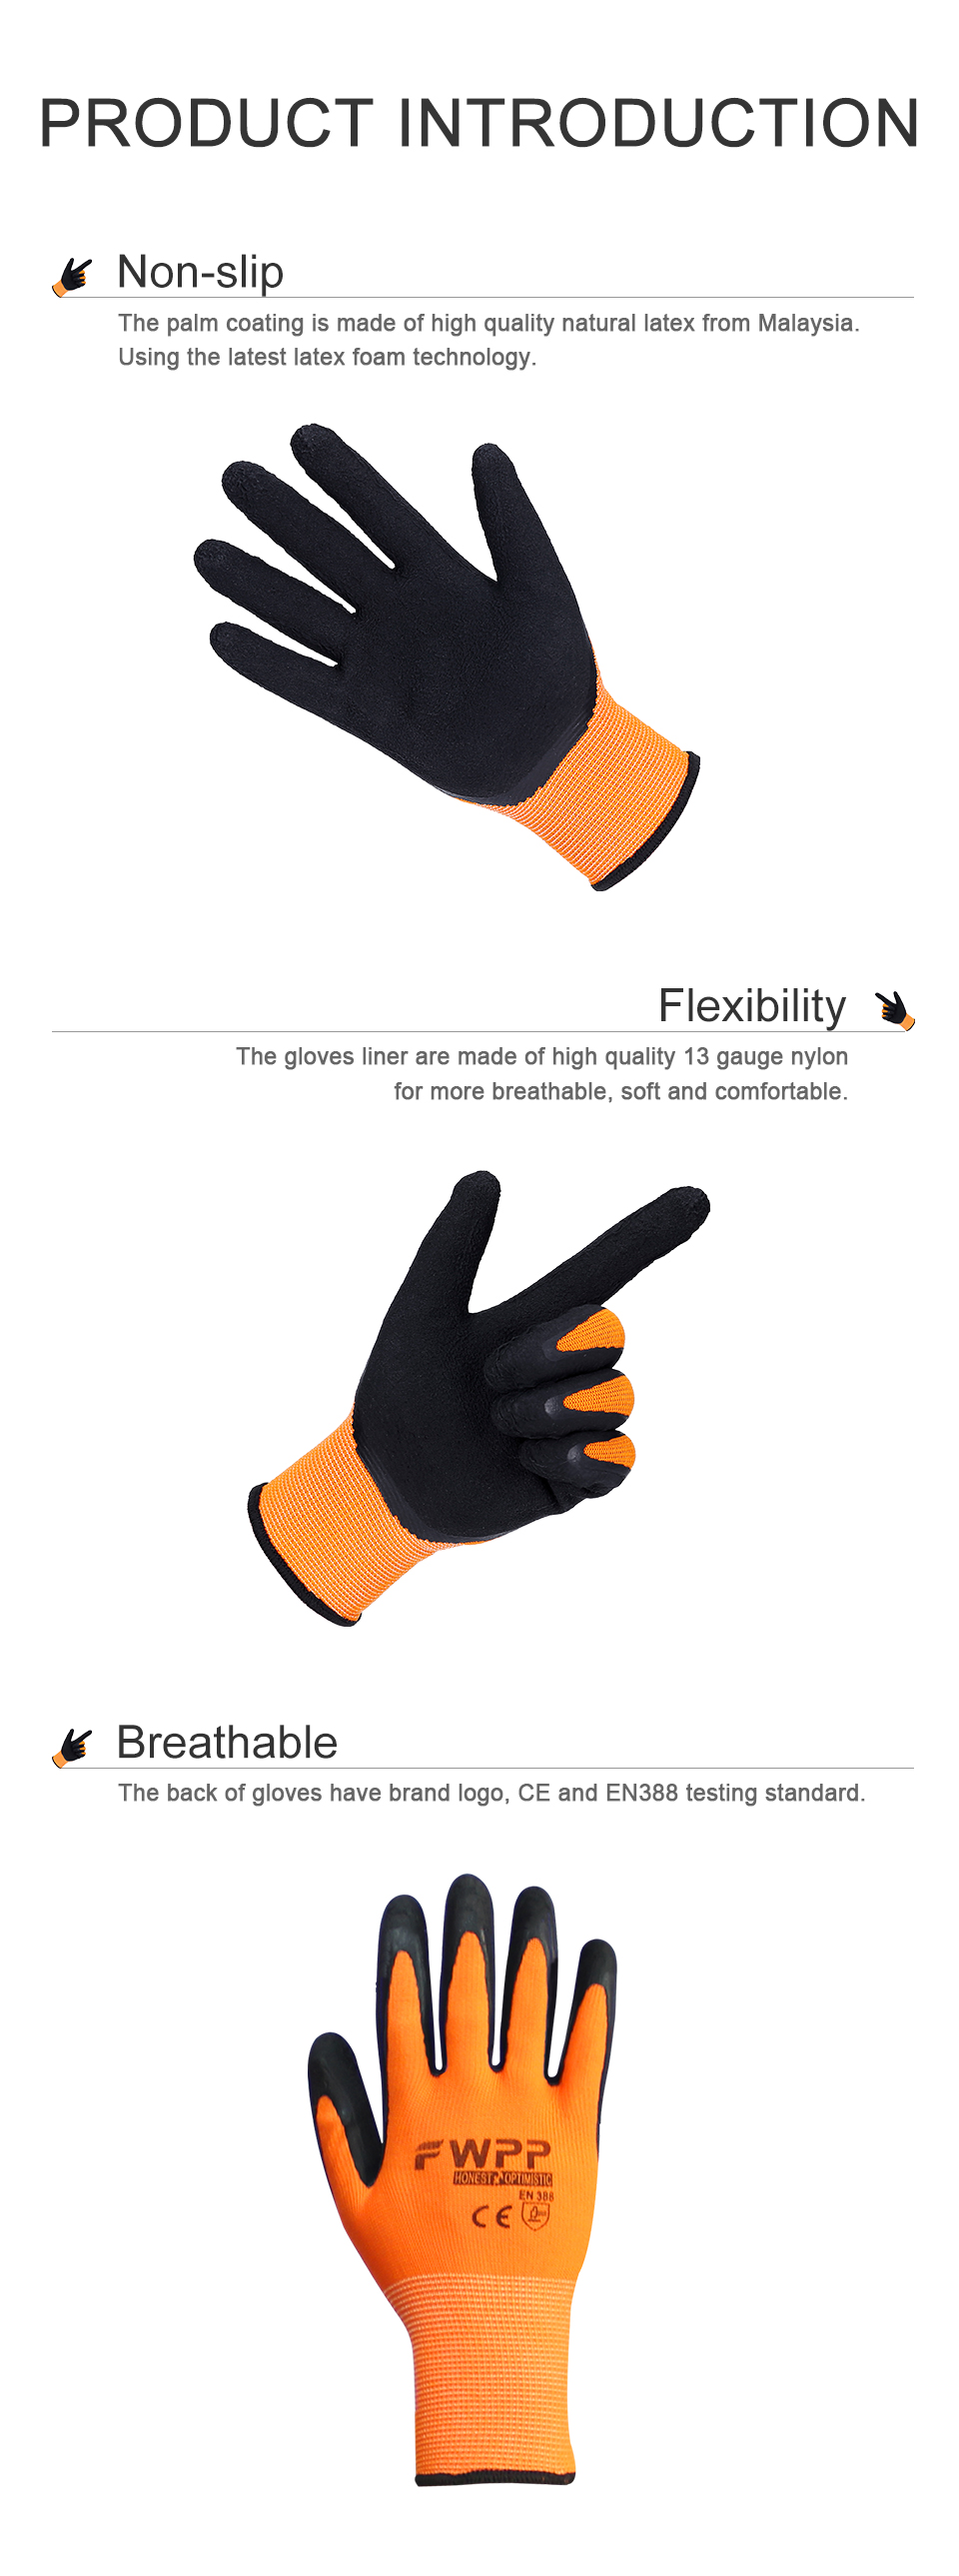 FWPP 1 3 pairs work gloves comfortable breathable non slip wear resistant  Fluorescent yellow latex coated gloves-in Safety Gloves from Security &